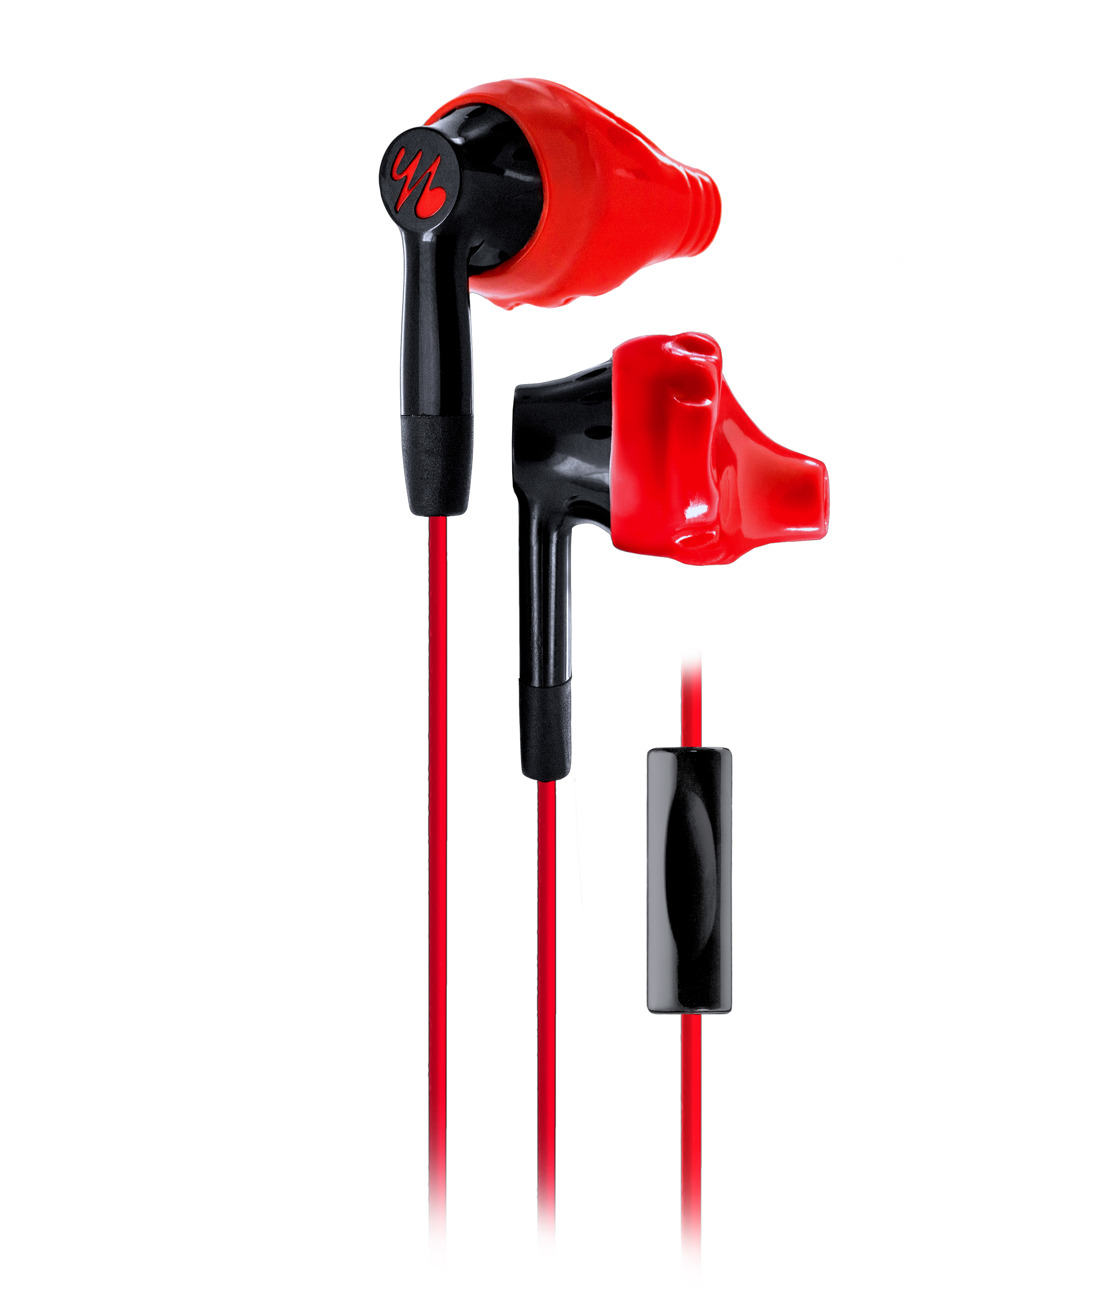 yurbuds® powered by JBL® Debuts New Earphones  Enhanced with JBL Signature Sound Exclusively at IFA 2014